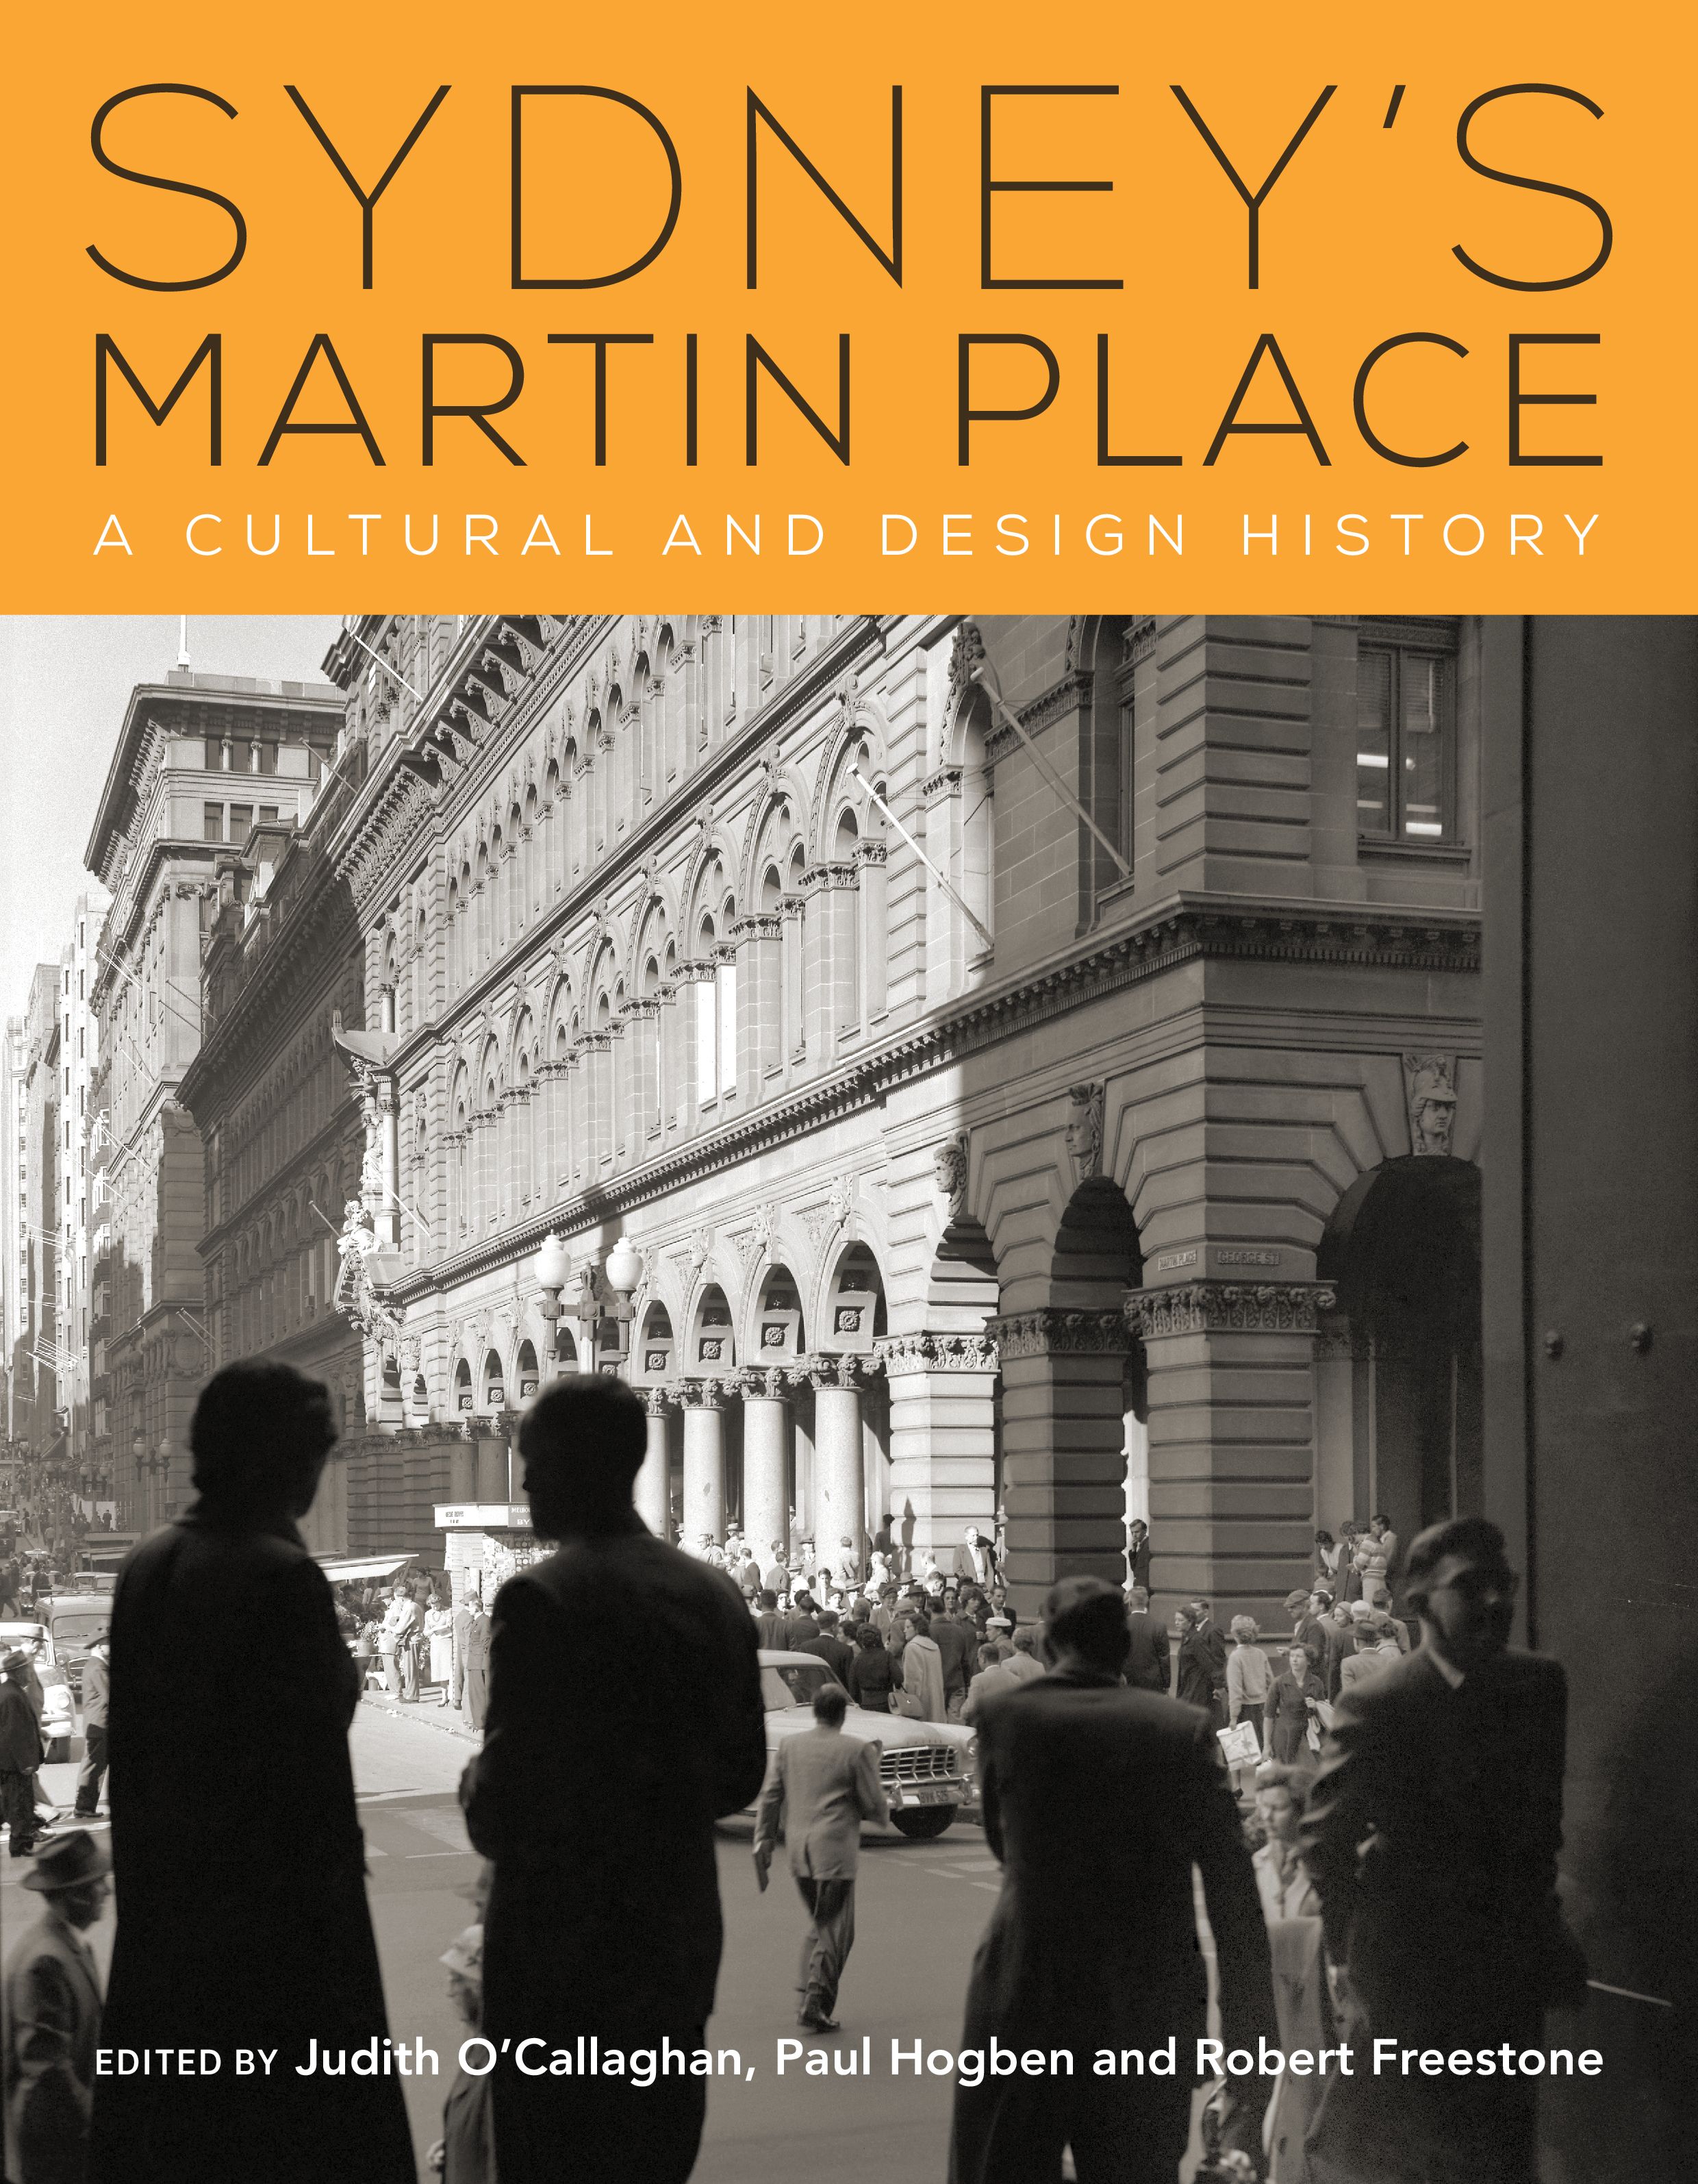 Sydneys martin place edited by judith ocallaghan paul hogben availability out of print the history fandeluxe Choice Image